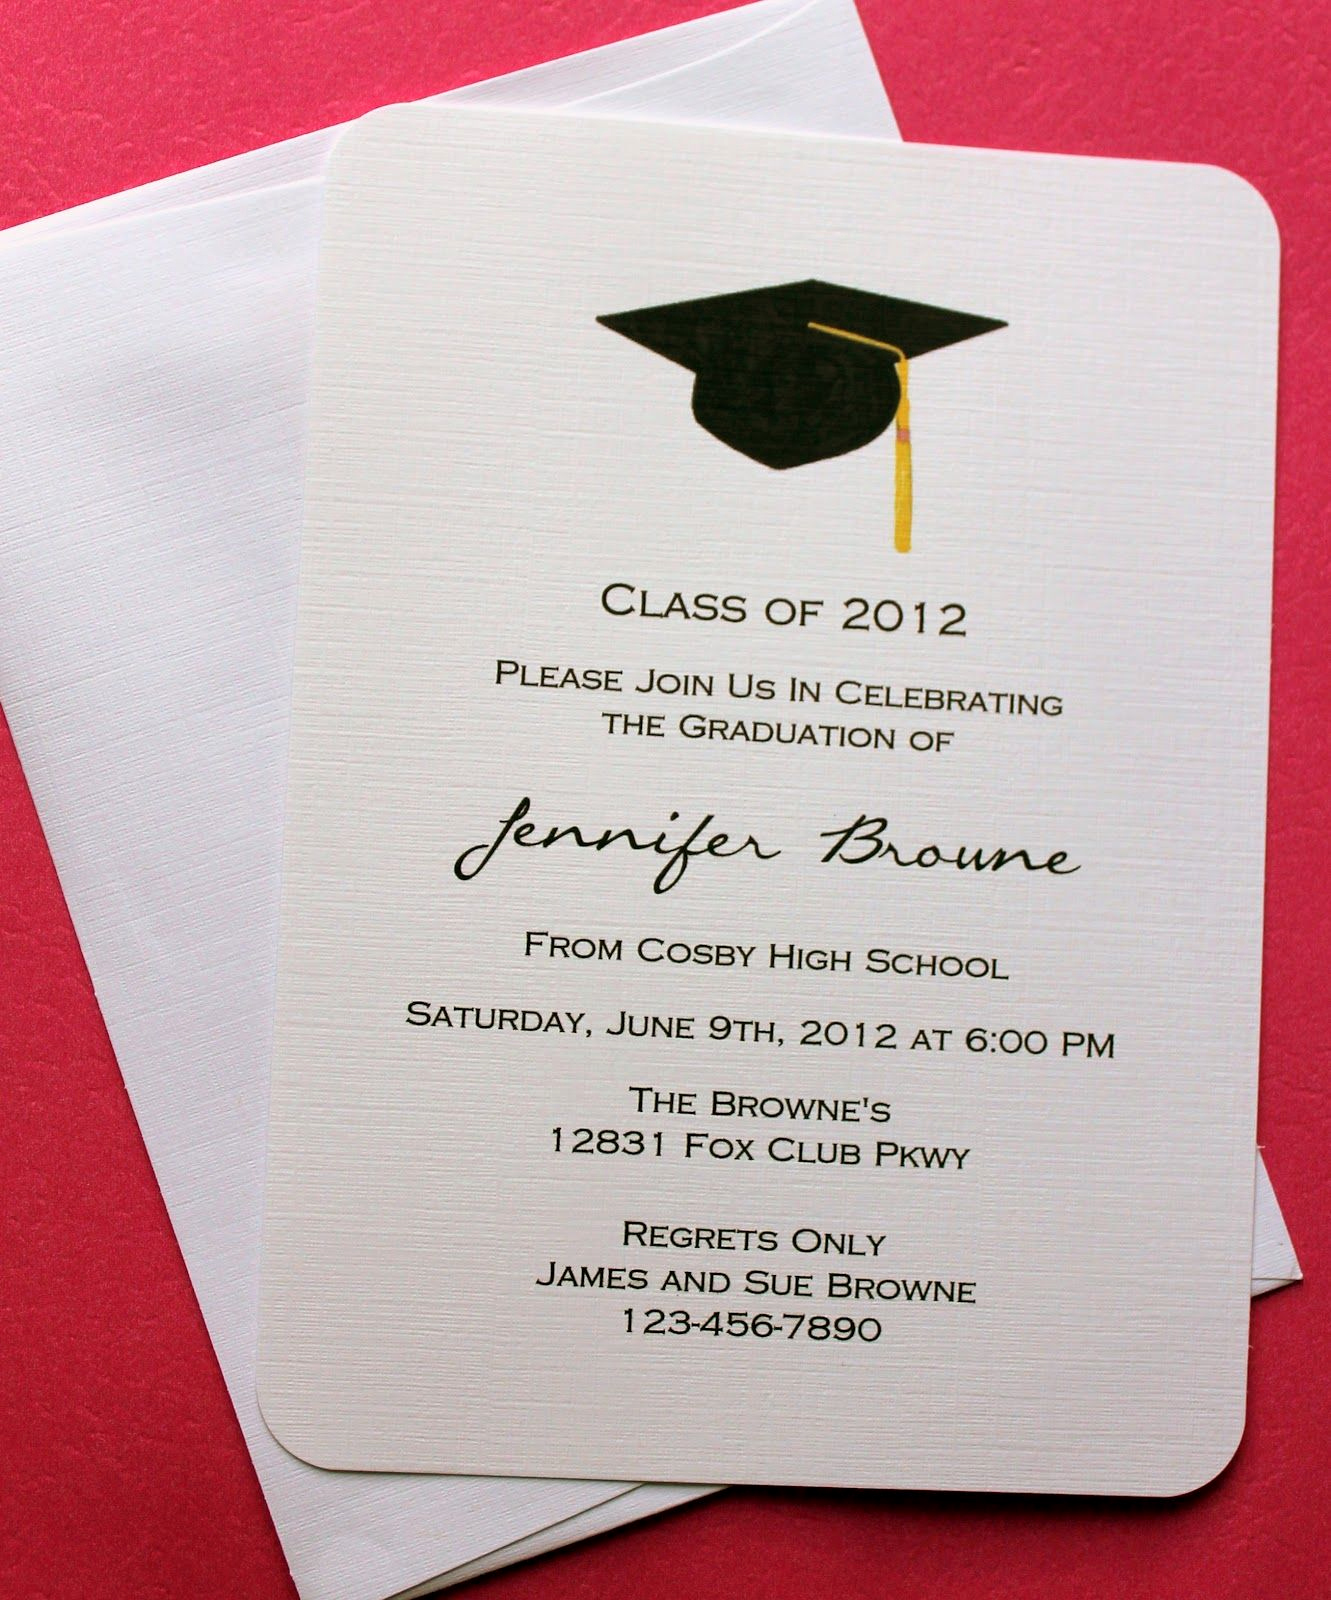 High School Graduation Invitation Cards New Collection Of Thousands Of Free Graduation Invitation